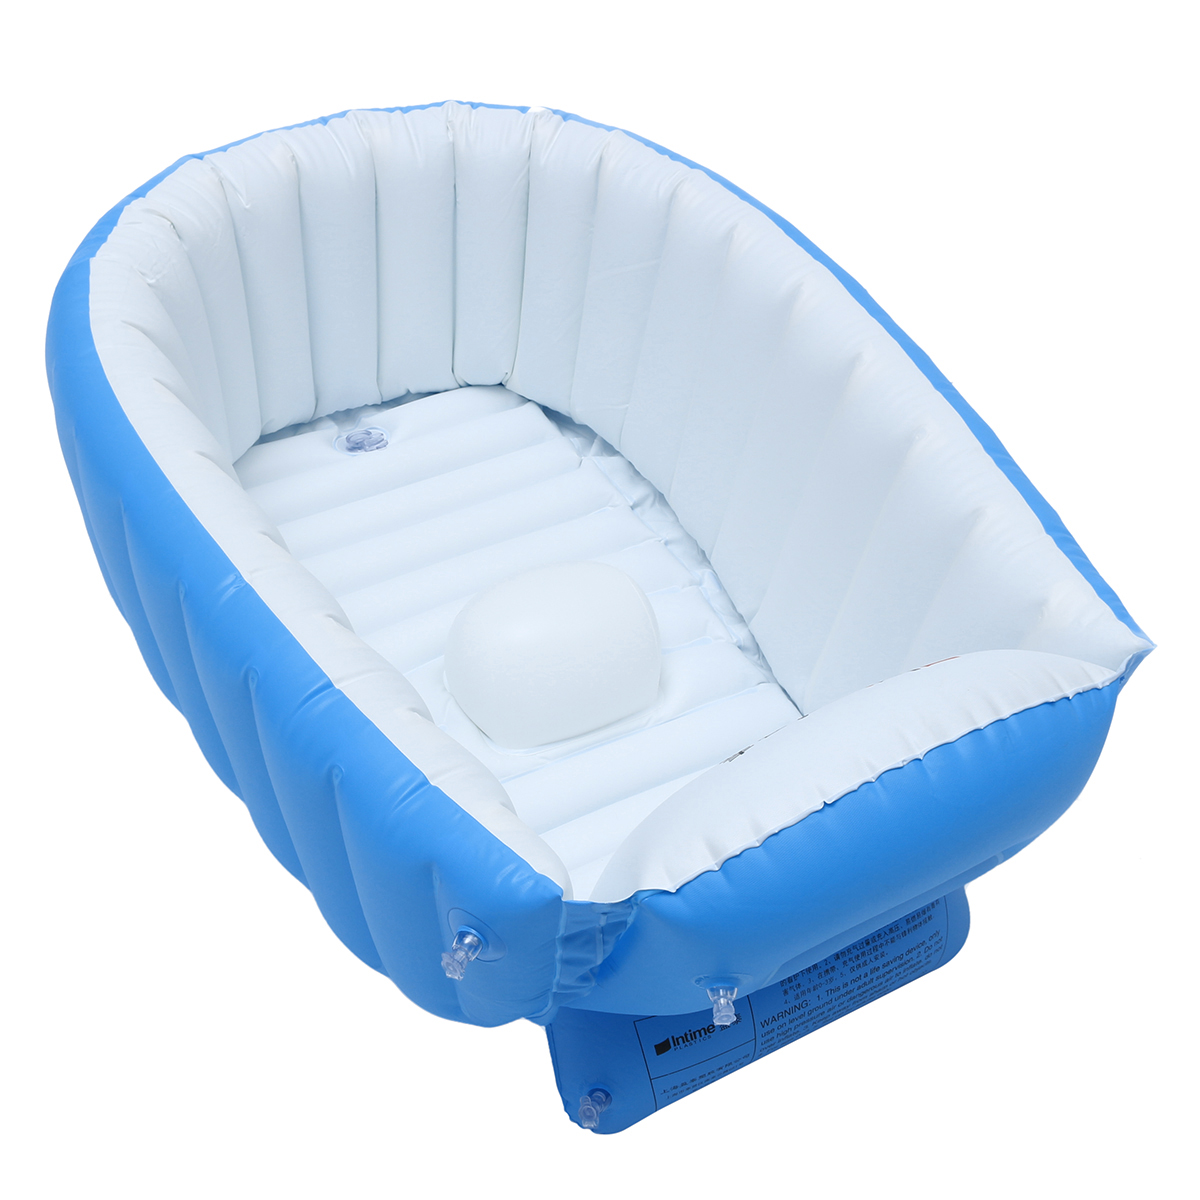 Details about New Baby Kids Toddler Inflatable Bathtub Newborn Thick Bath Tub Summer Portable